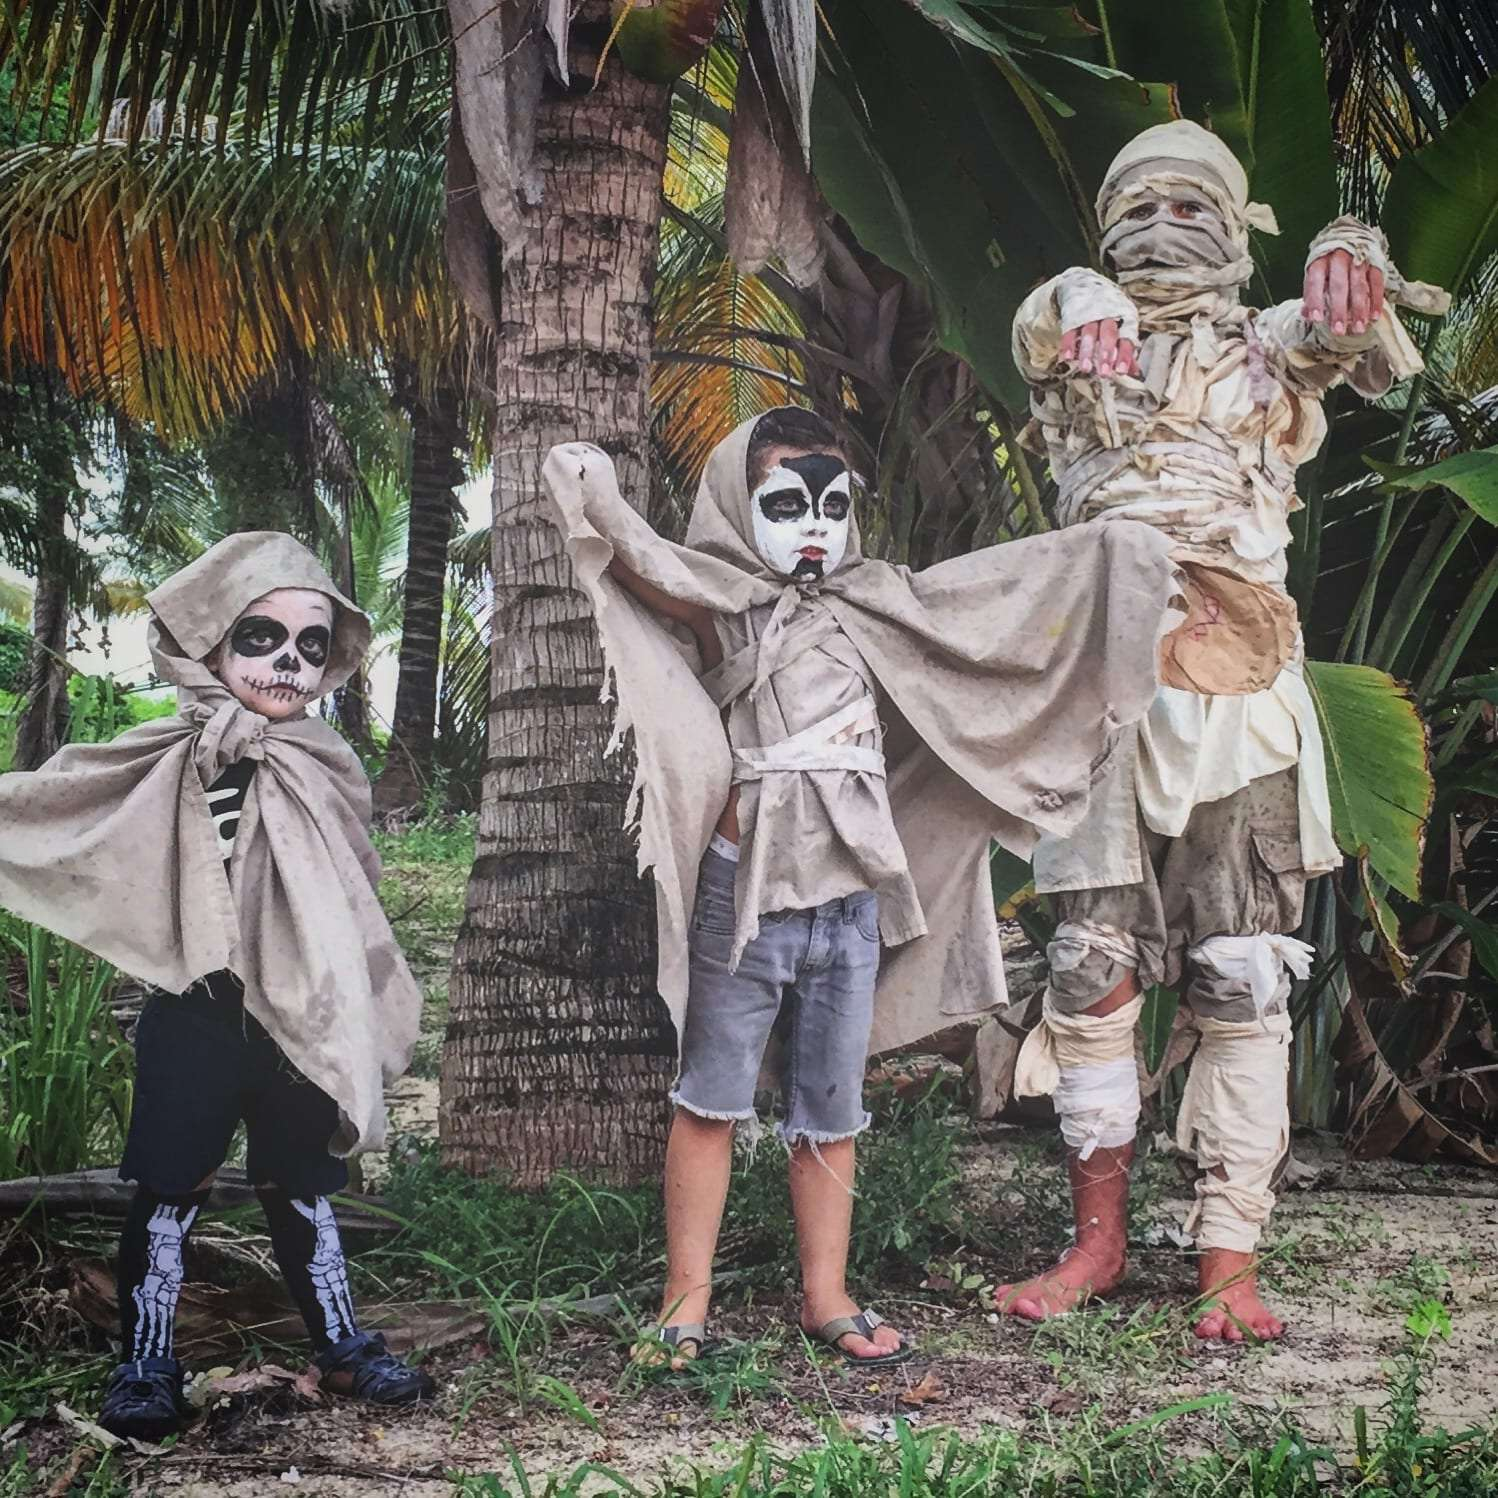 three children dressed up as mummies, skeletons and ghouls for Halloween in Belize